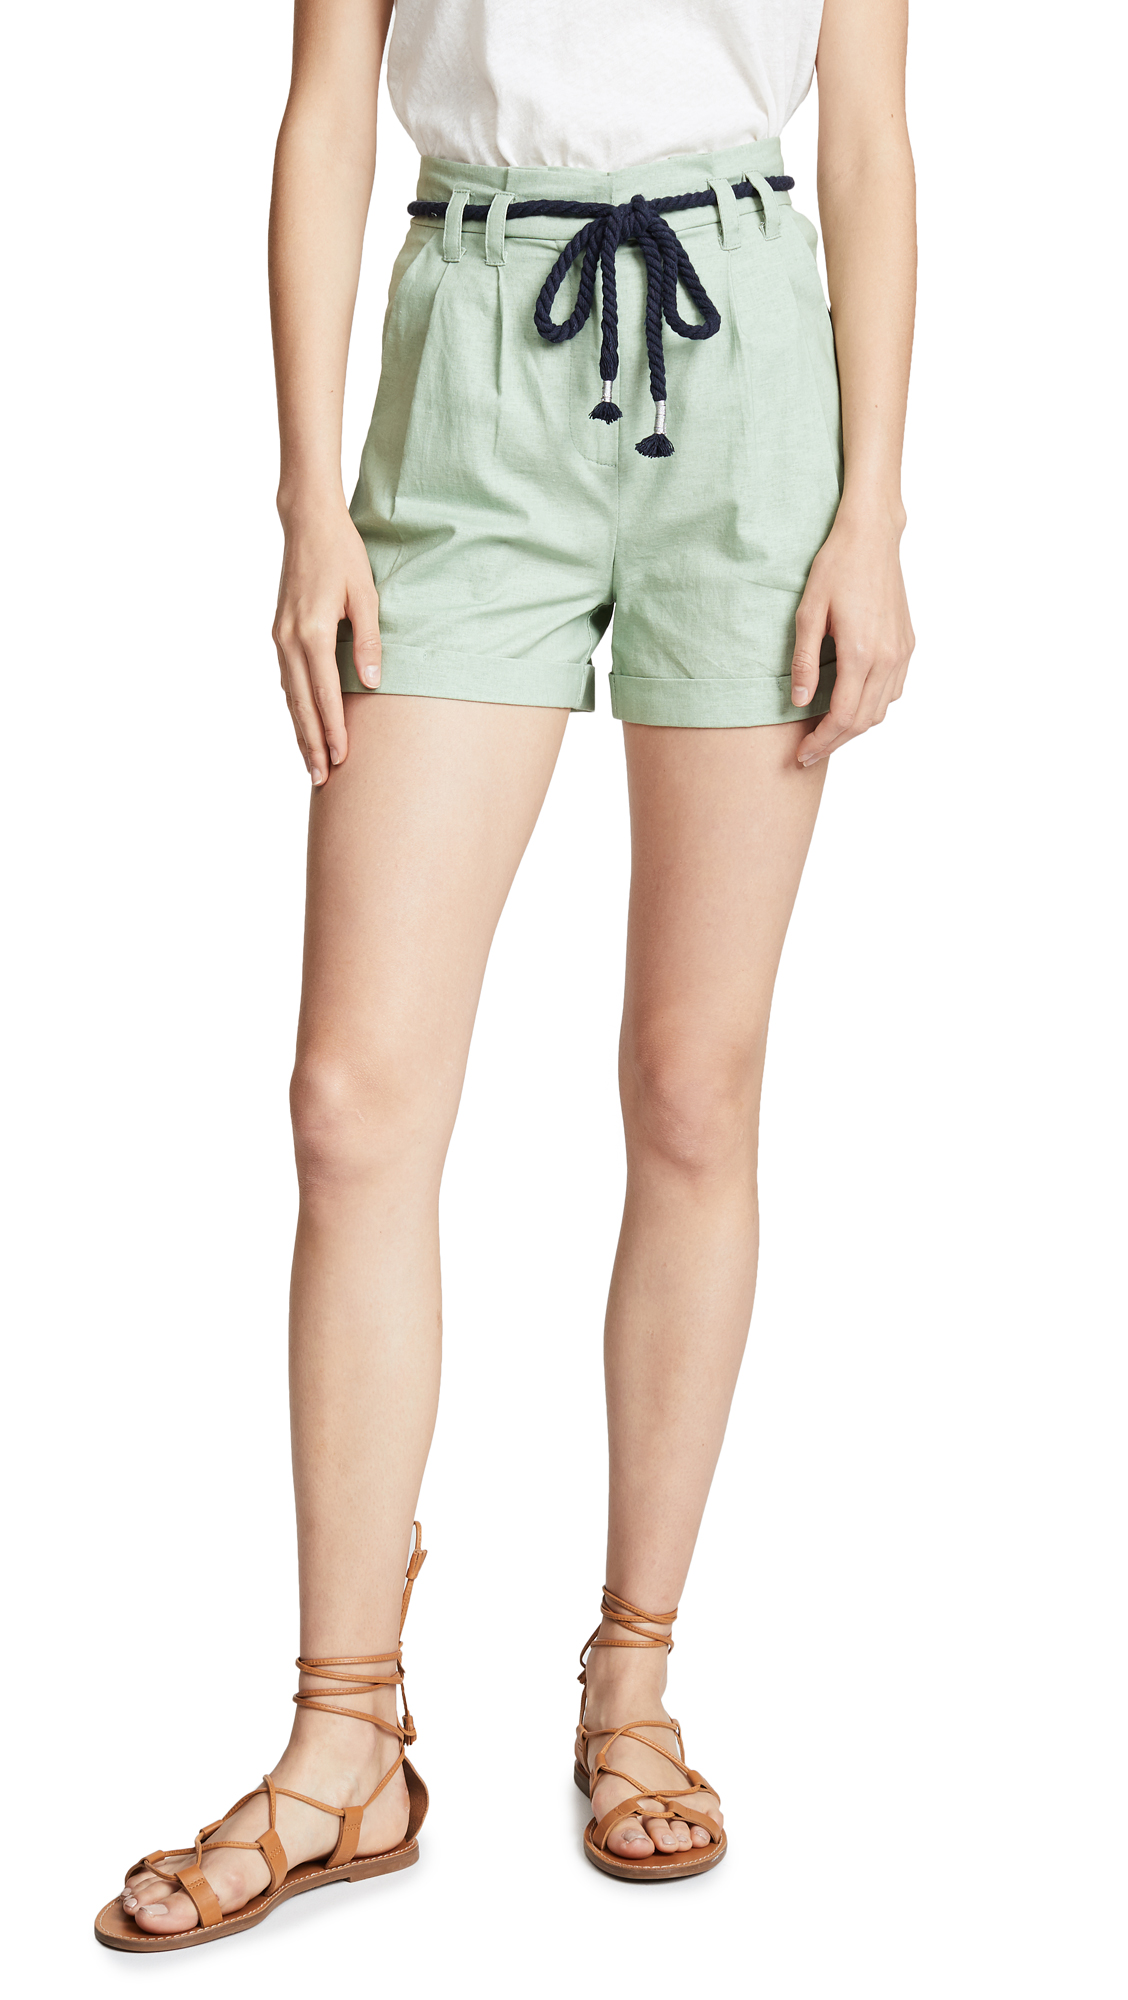 EVIDNT Trouser Shorts